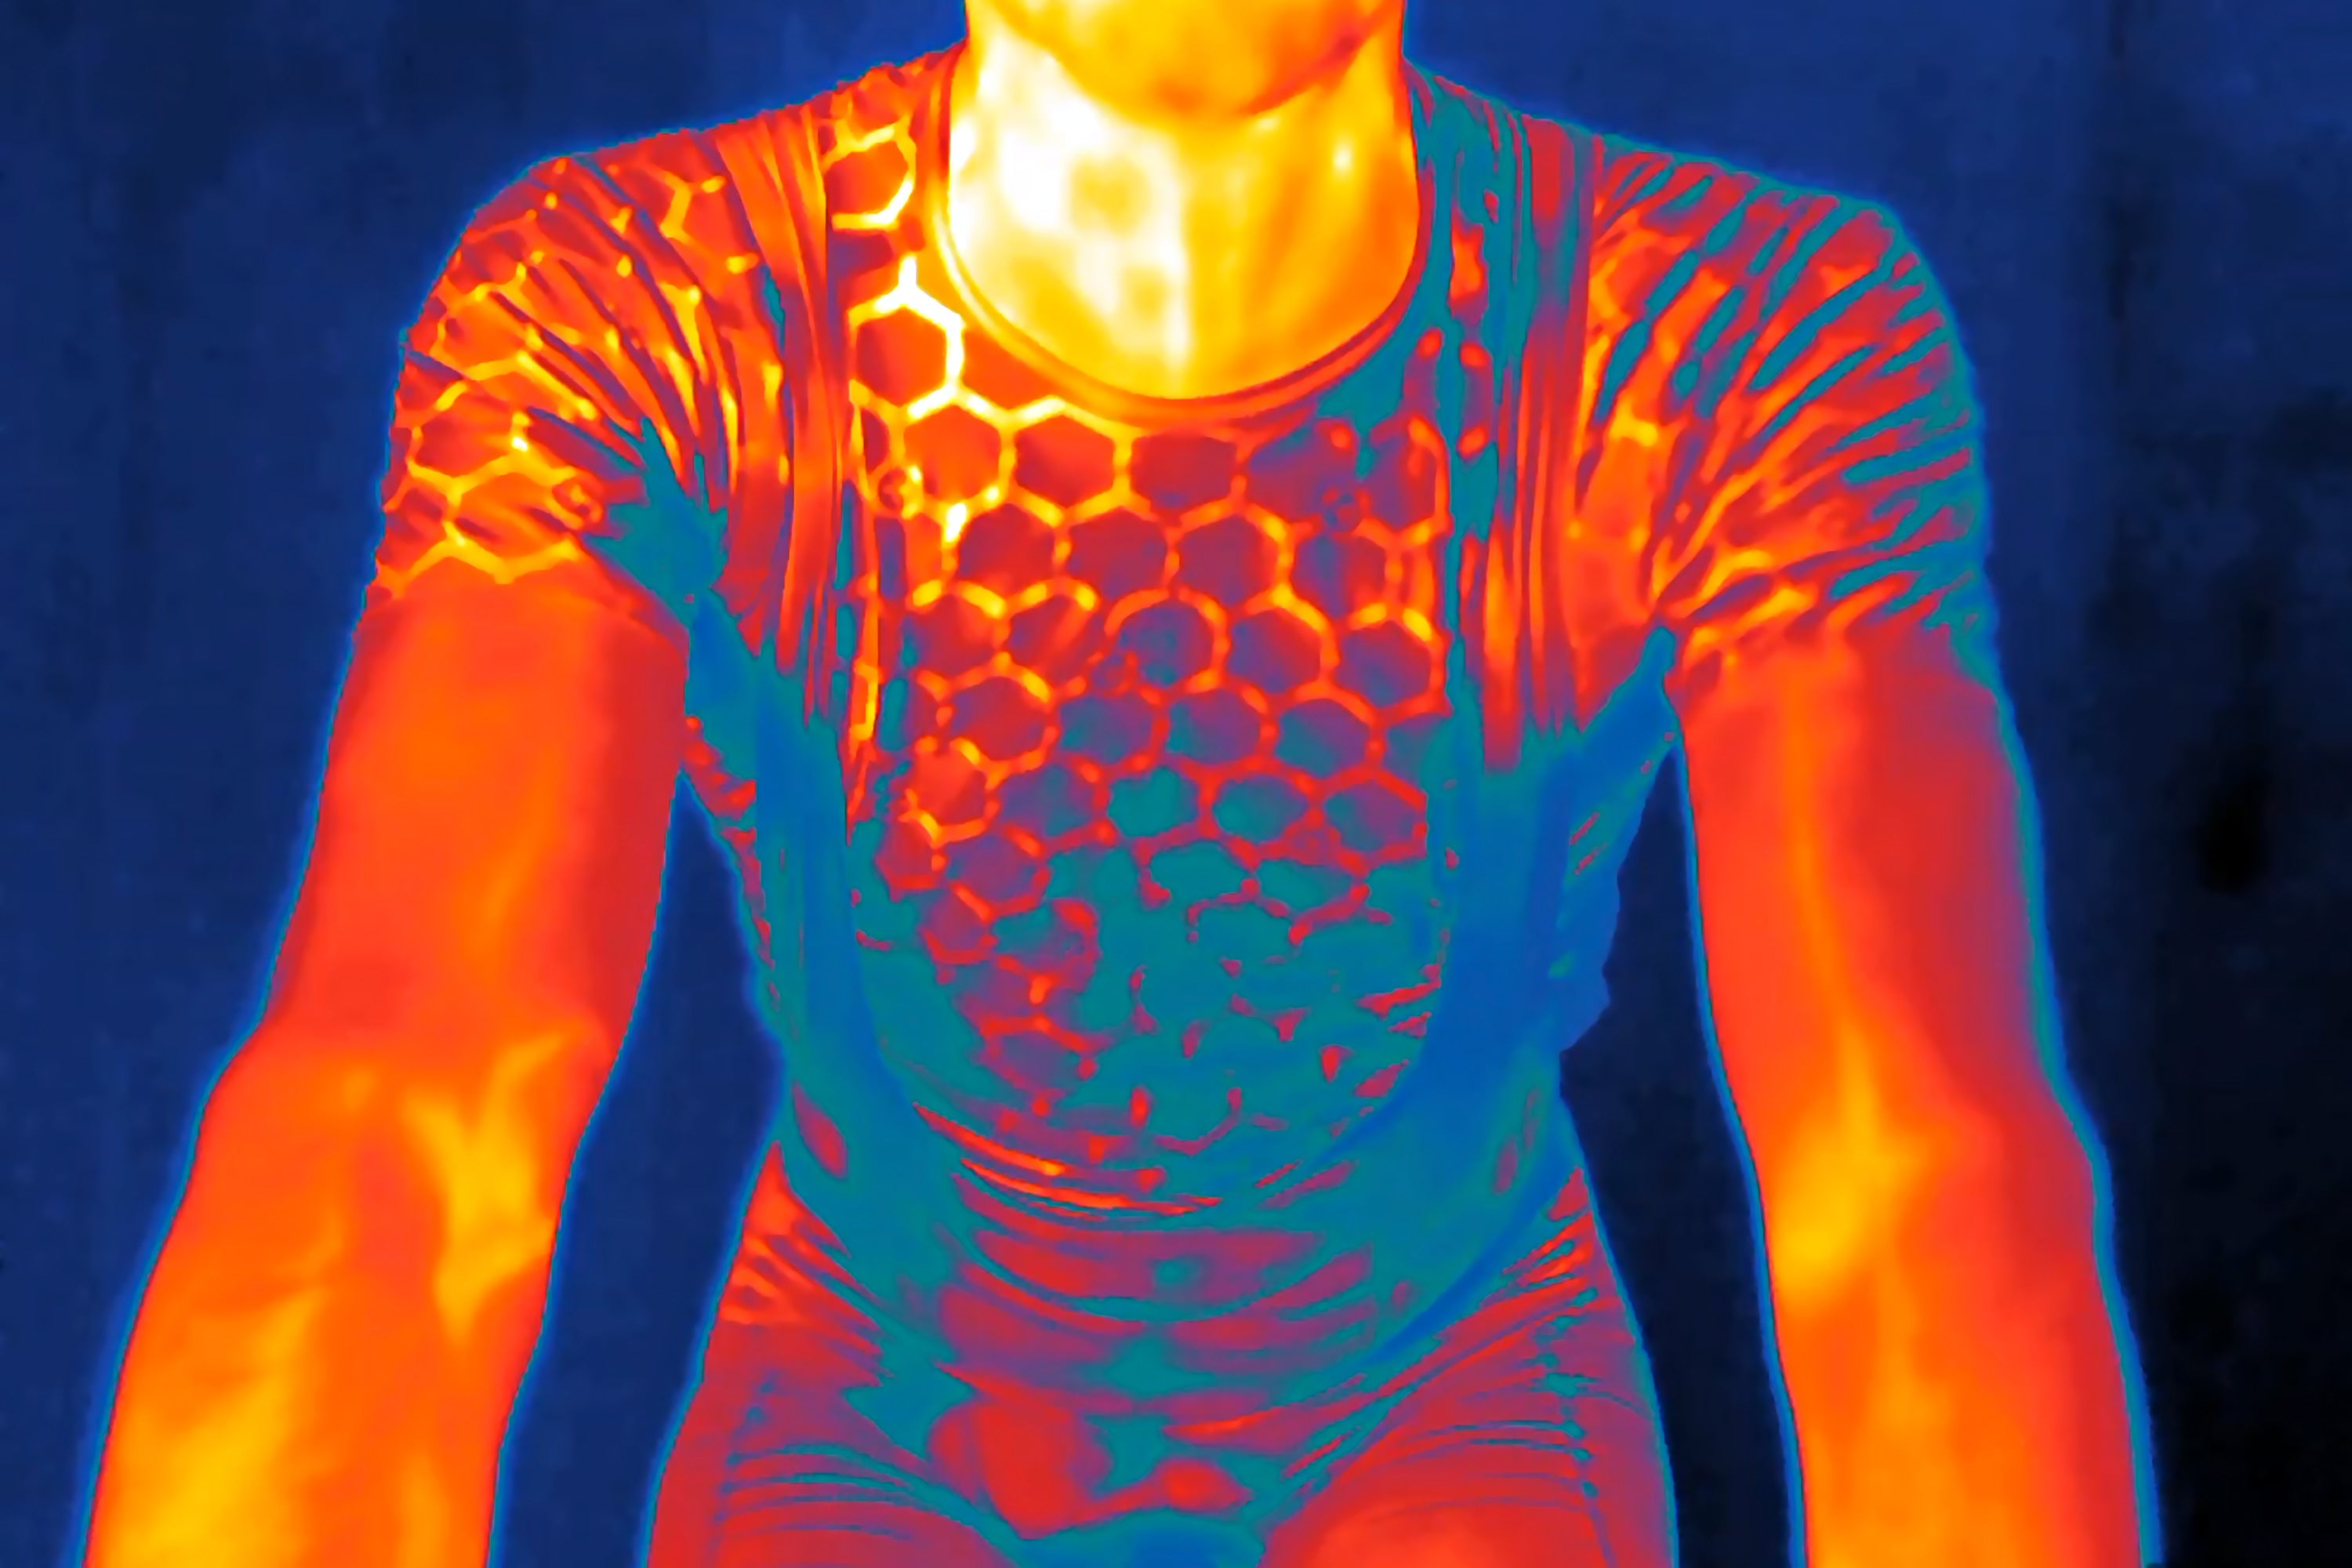 Using this space age element, Métier has bonded a specially designed pattern to redefine base layers. The pattern engages with the body's hotspots to dissipate heat throughout the thermal circuit, either cooling or warming your core temperature.